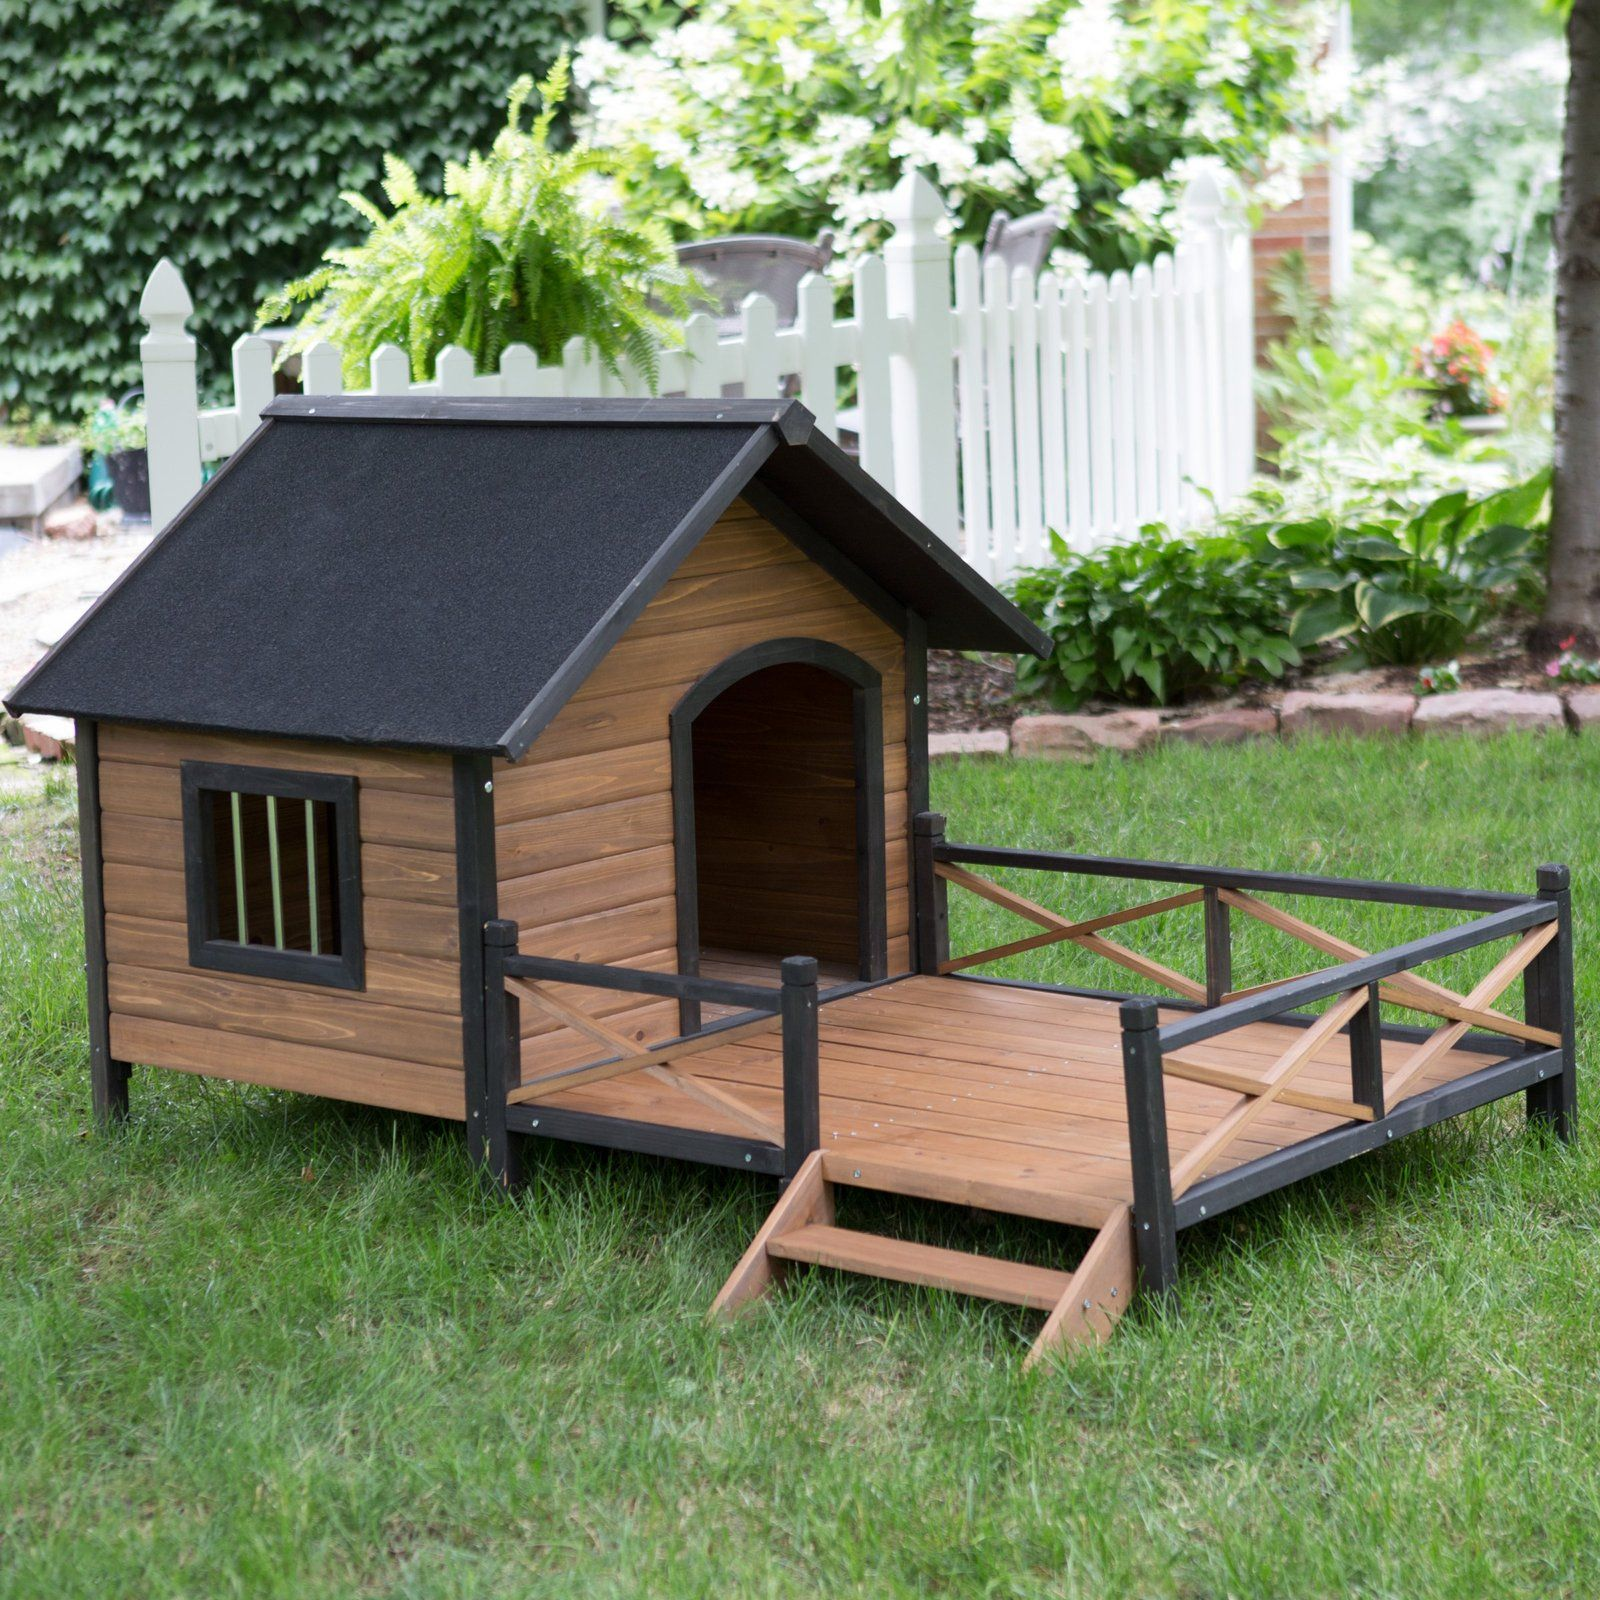 Outdoor Large Dog House Kennel All Weather Wooden Raised Floor Spacious Deck This Outdoor Large Dog House Provid Dog House Diy Large Dog House Cool Dog Houses